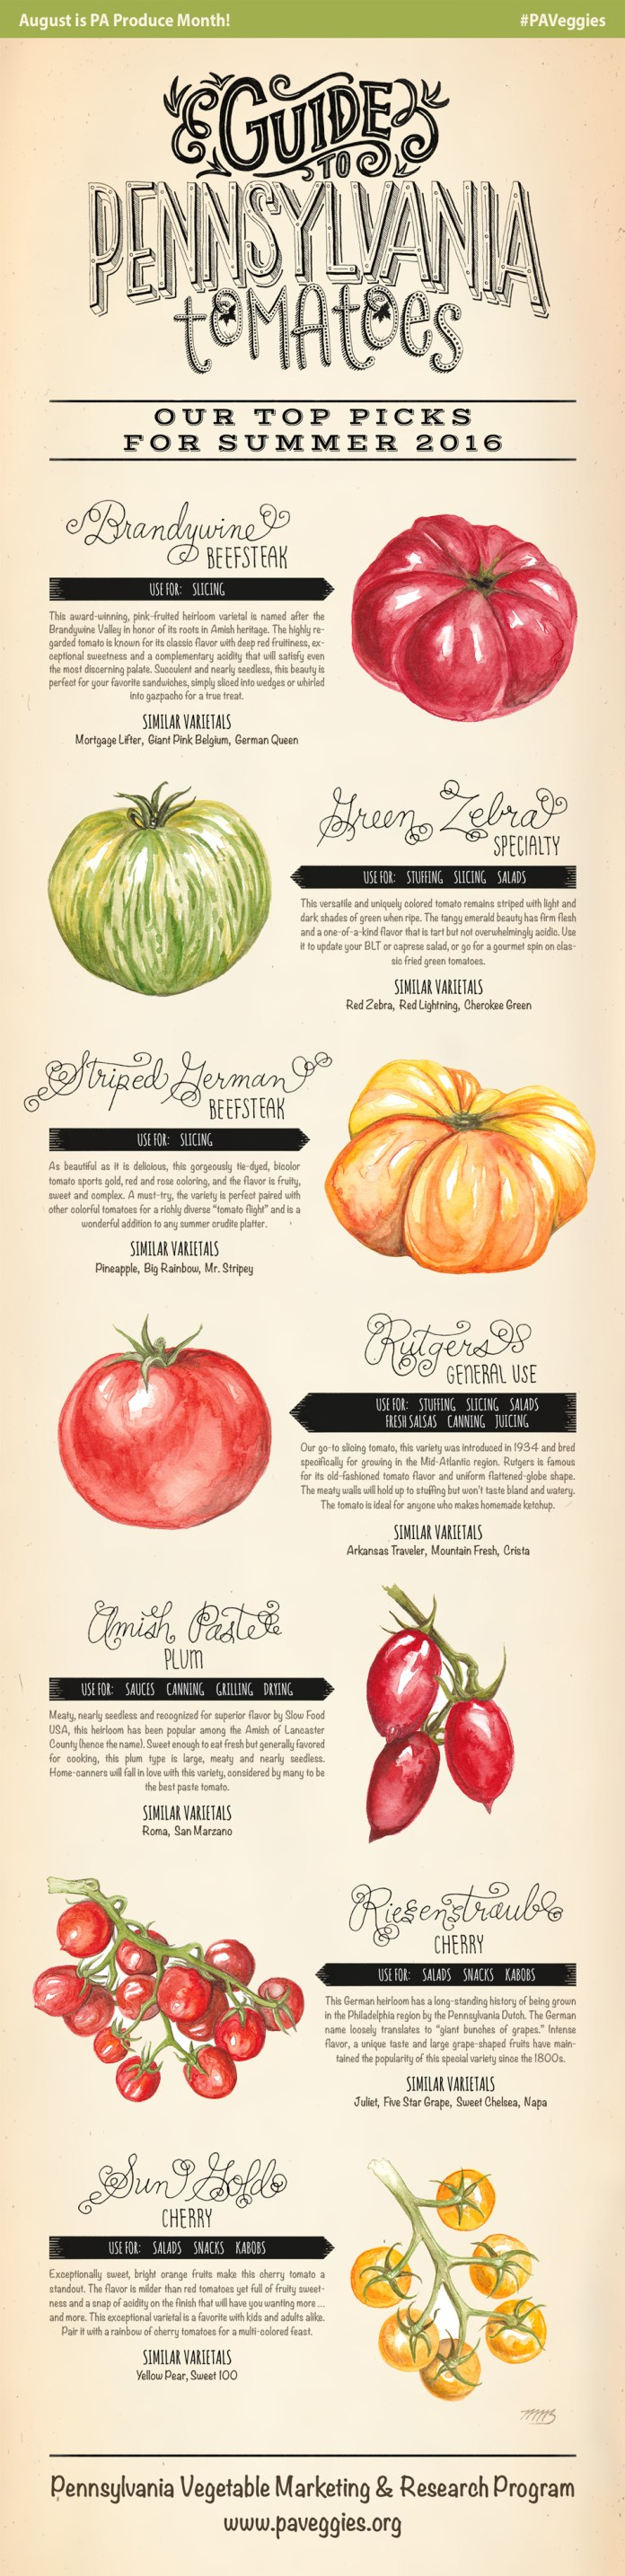 Guide to PA Tomatoes: Our Top Picks for Summer 2016